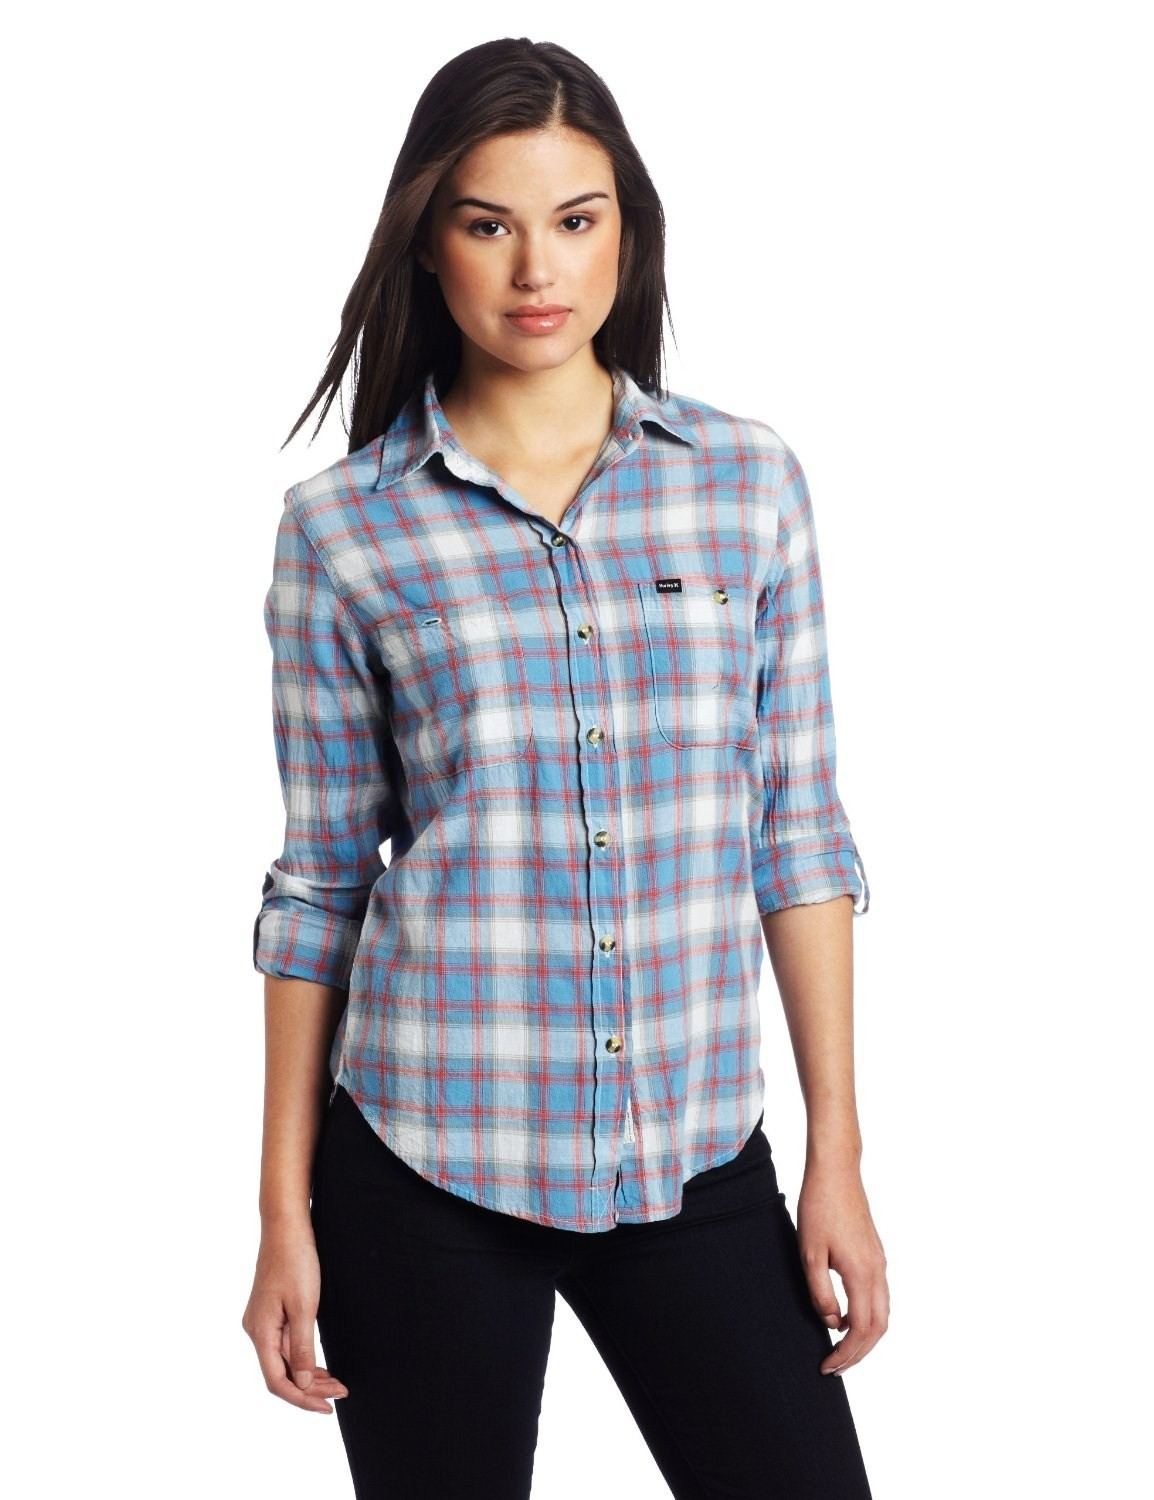 Gap women's flannel shirts have been updated to give women a feminine, refined silhouette. Not your grandfather's shirts, our flannel shirts for women are constructed to fit and flatter a woman's shape.